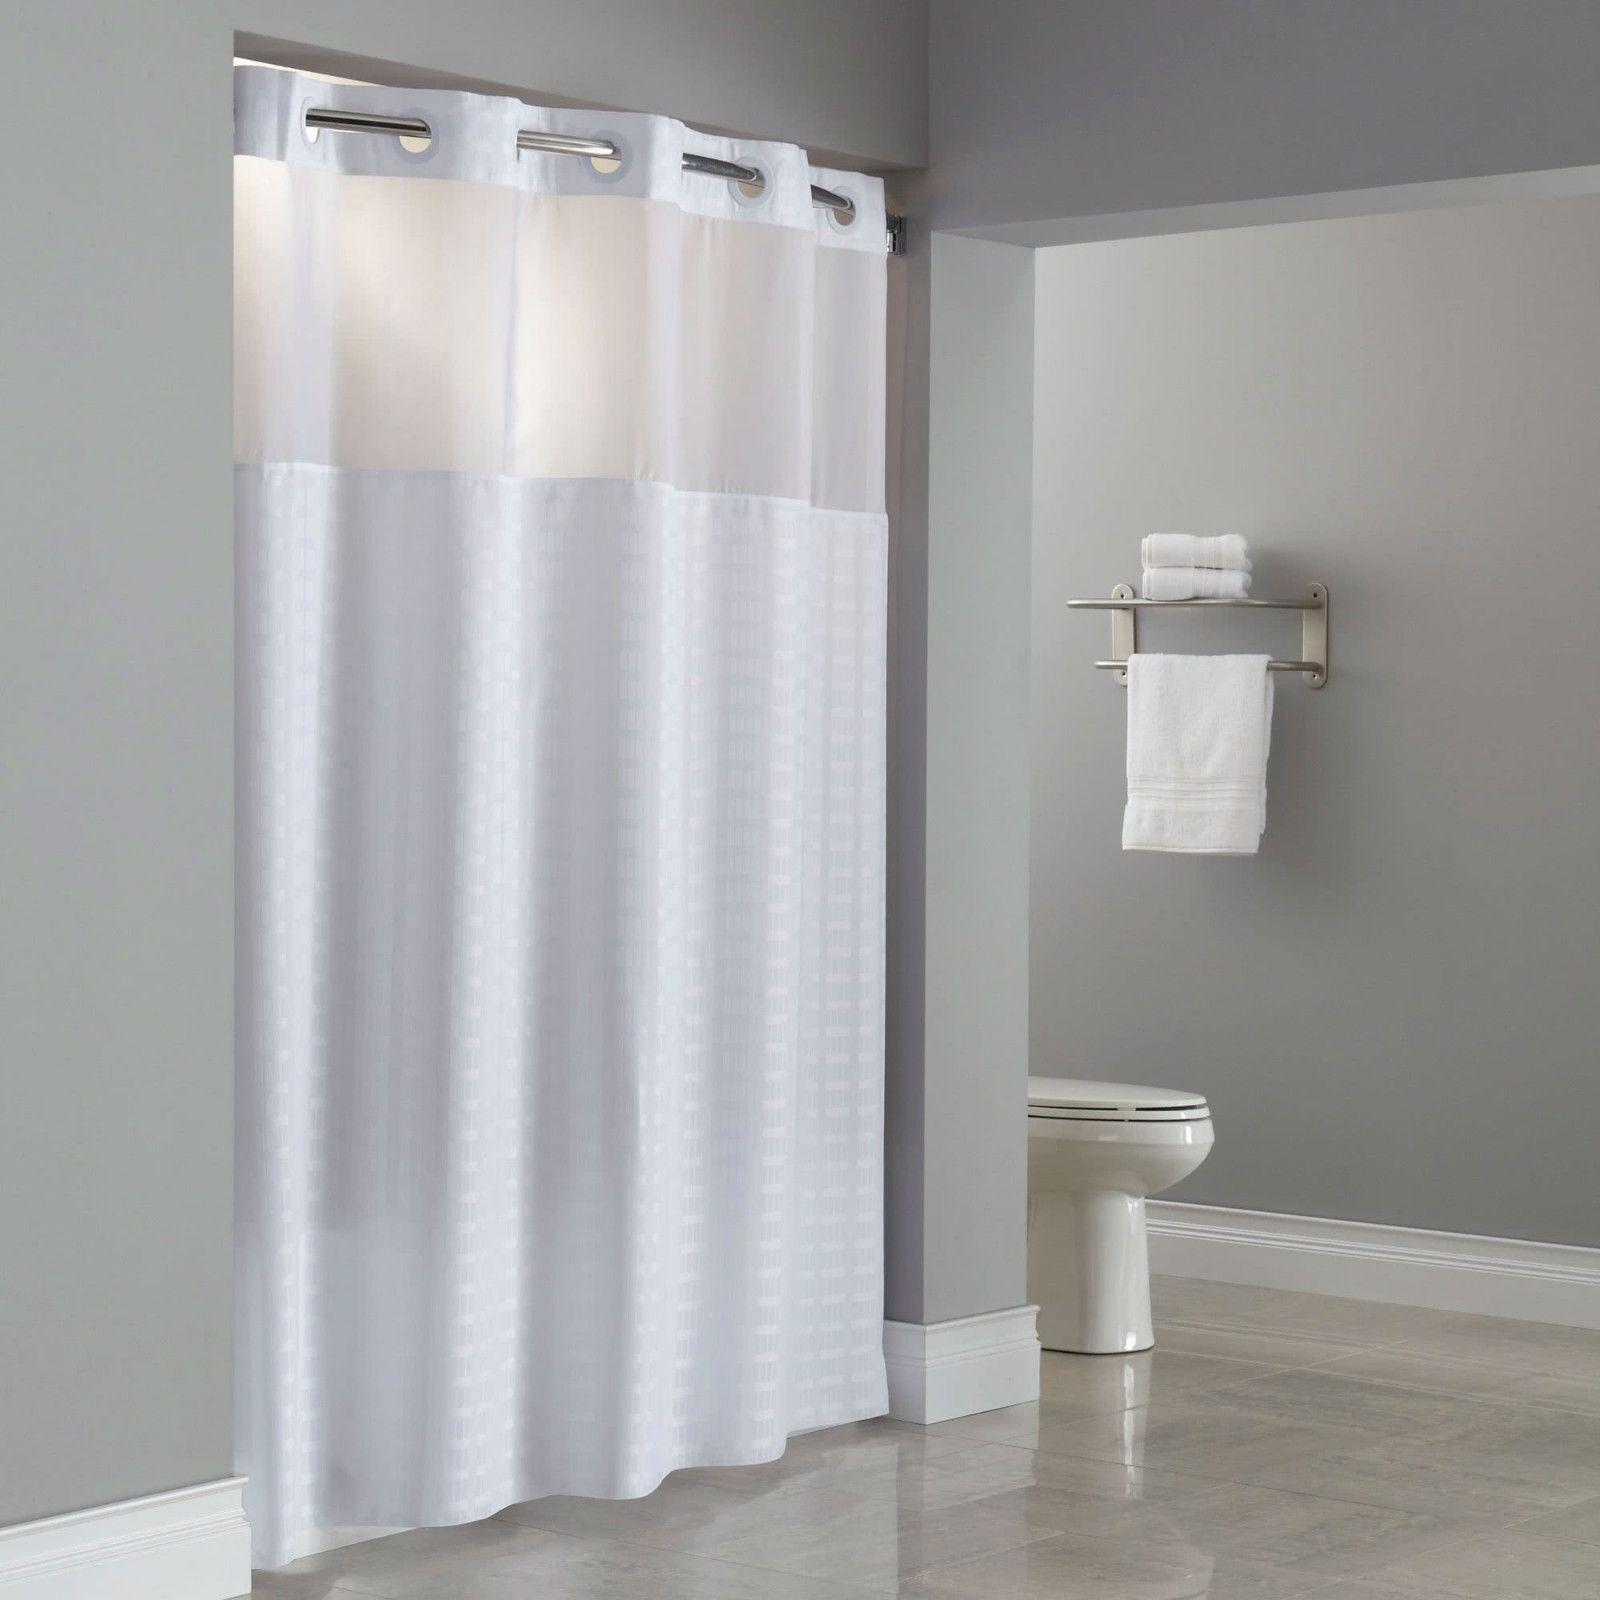 Hookless Shower Curtain White Fabric Voile Window 71